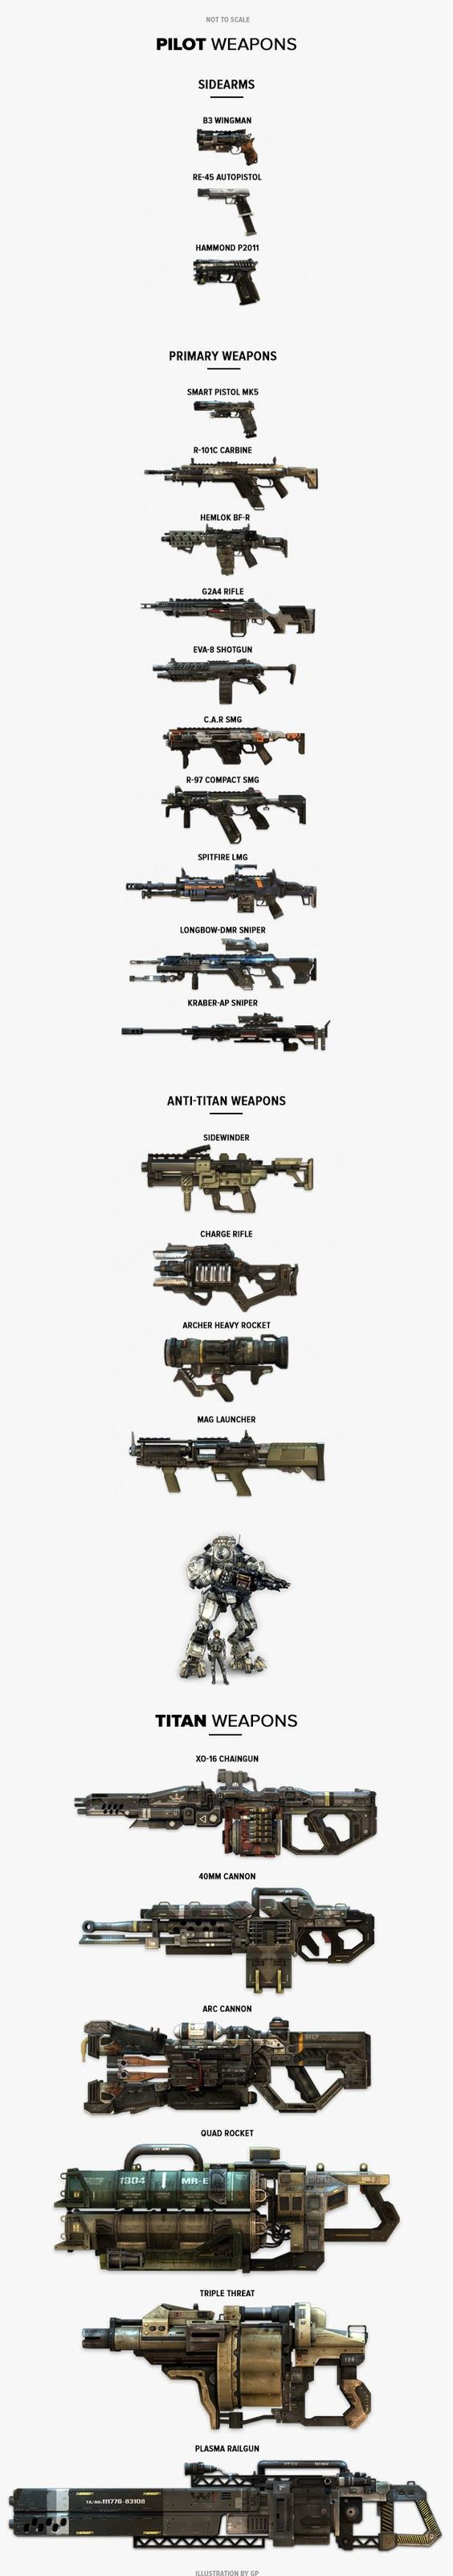 titanfall-weapons-overview-gear-patrol-sidebar- | DIY and ...